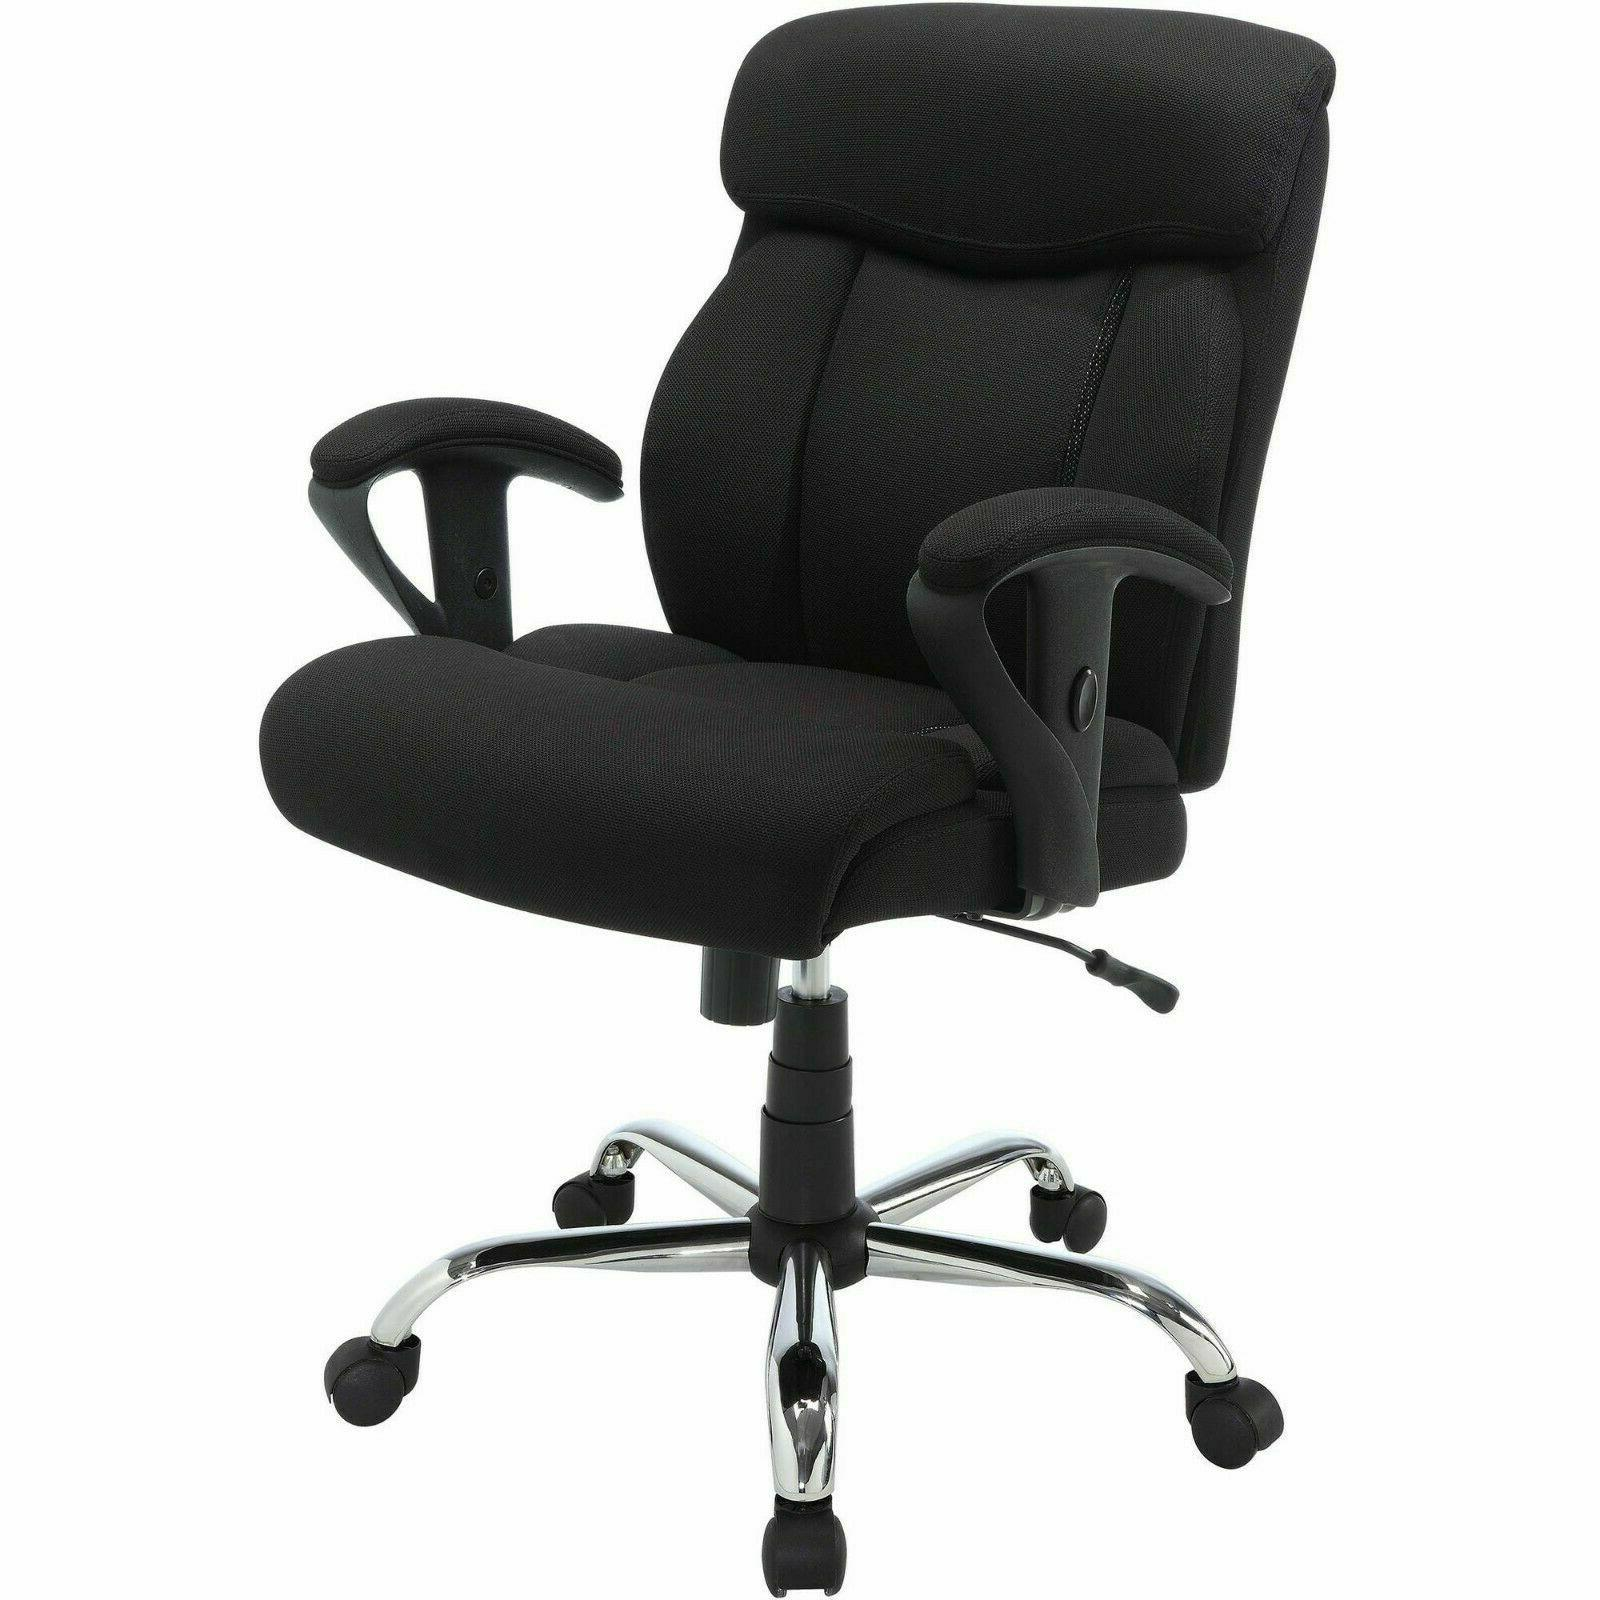 Serta Black Mesh Fabric Big Tall Manager Chair Office Desk A